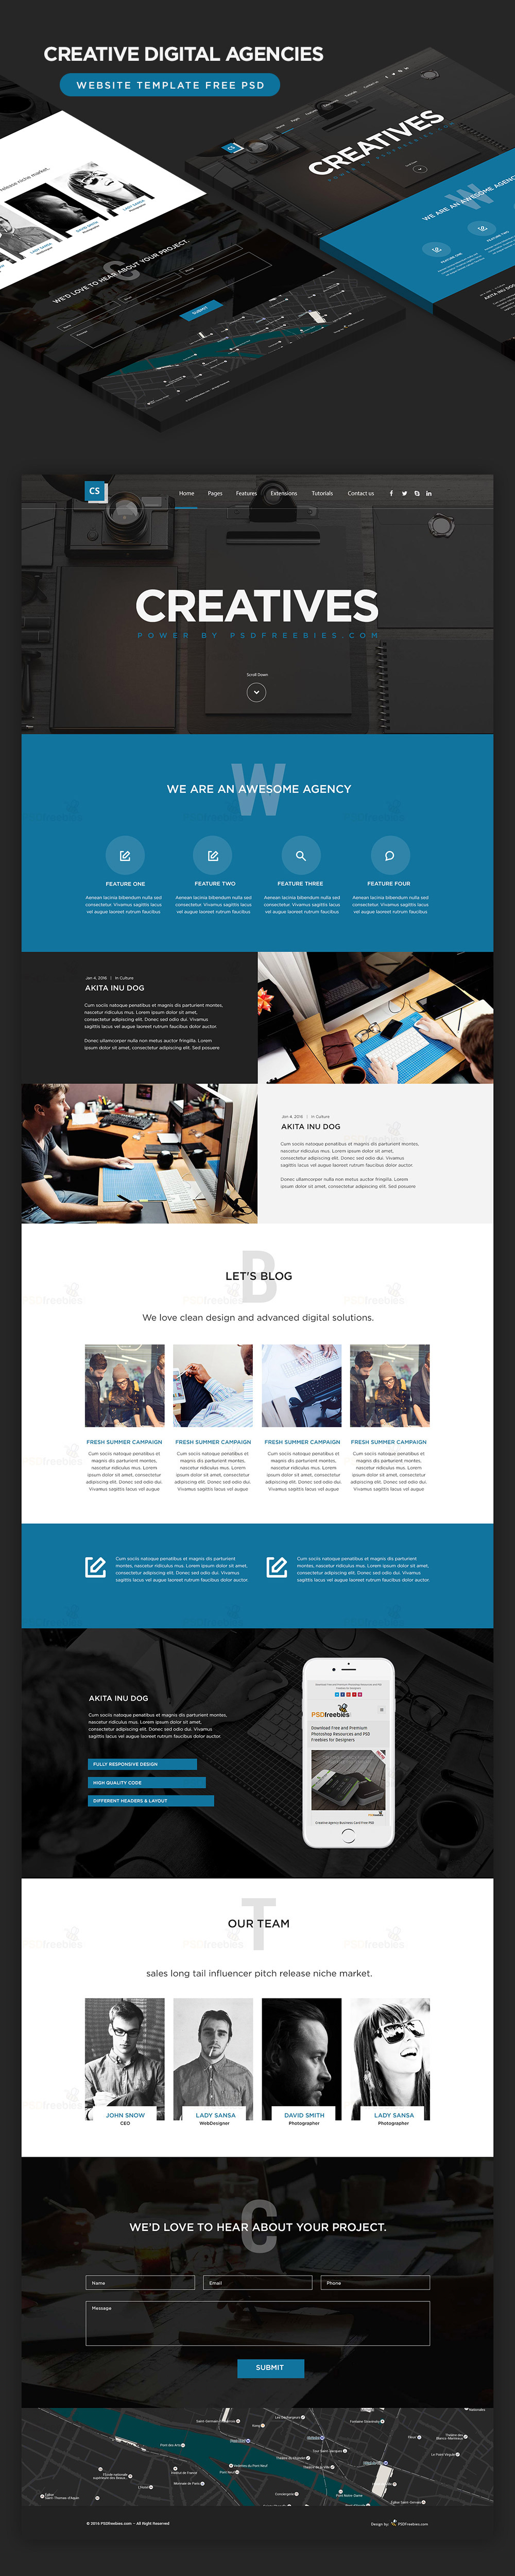 High quality 50 free corporate and business web templates psd creative digital agencies website template free psd cheaphphosting Choice Image